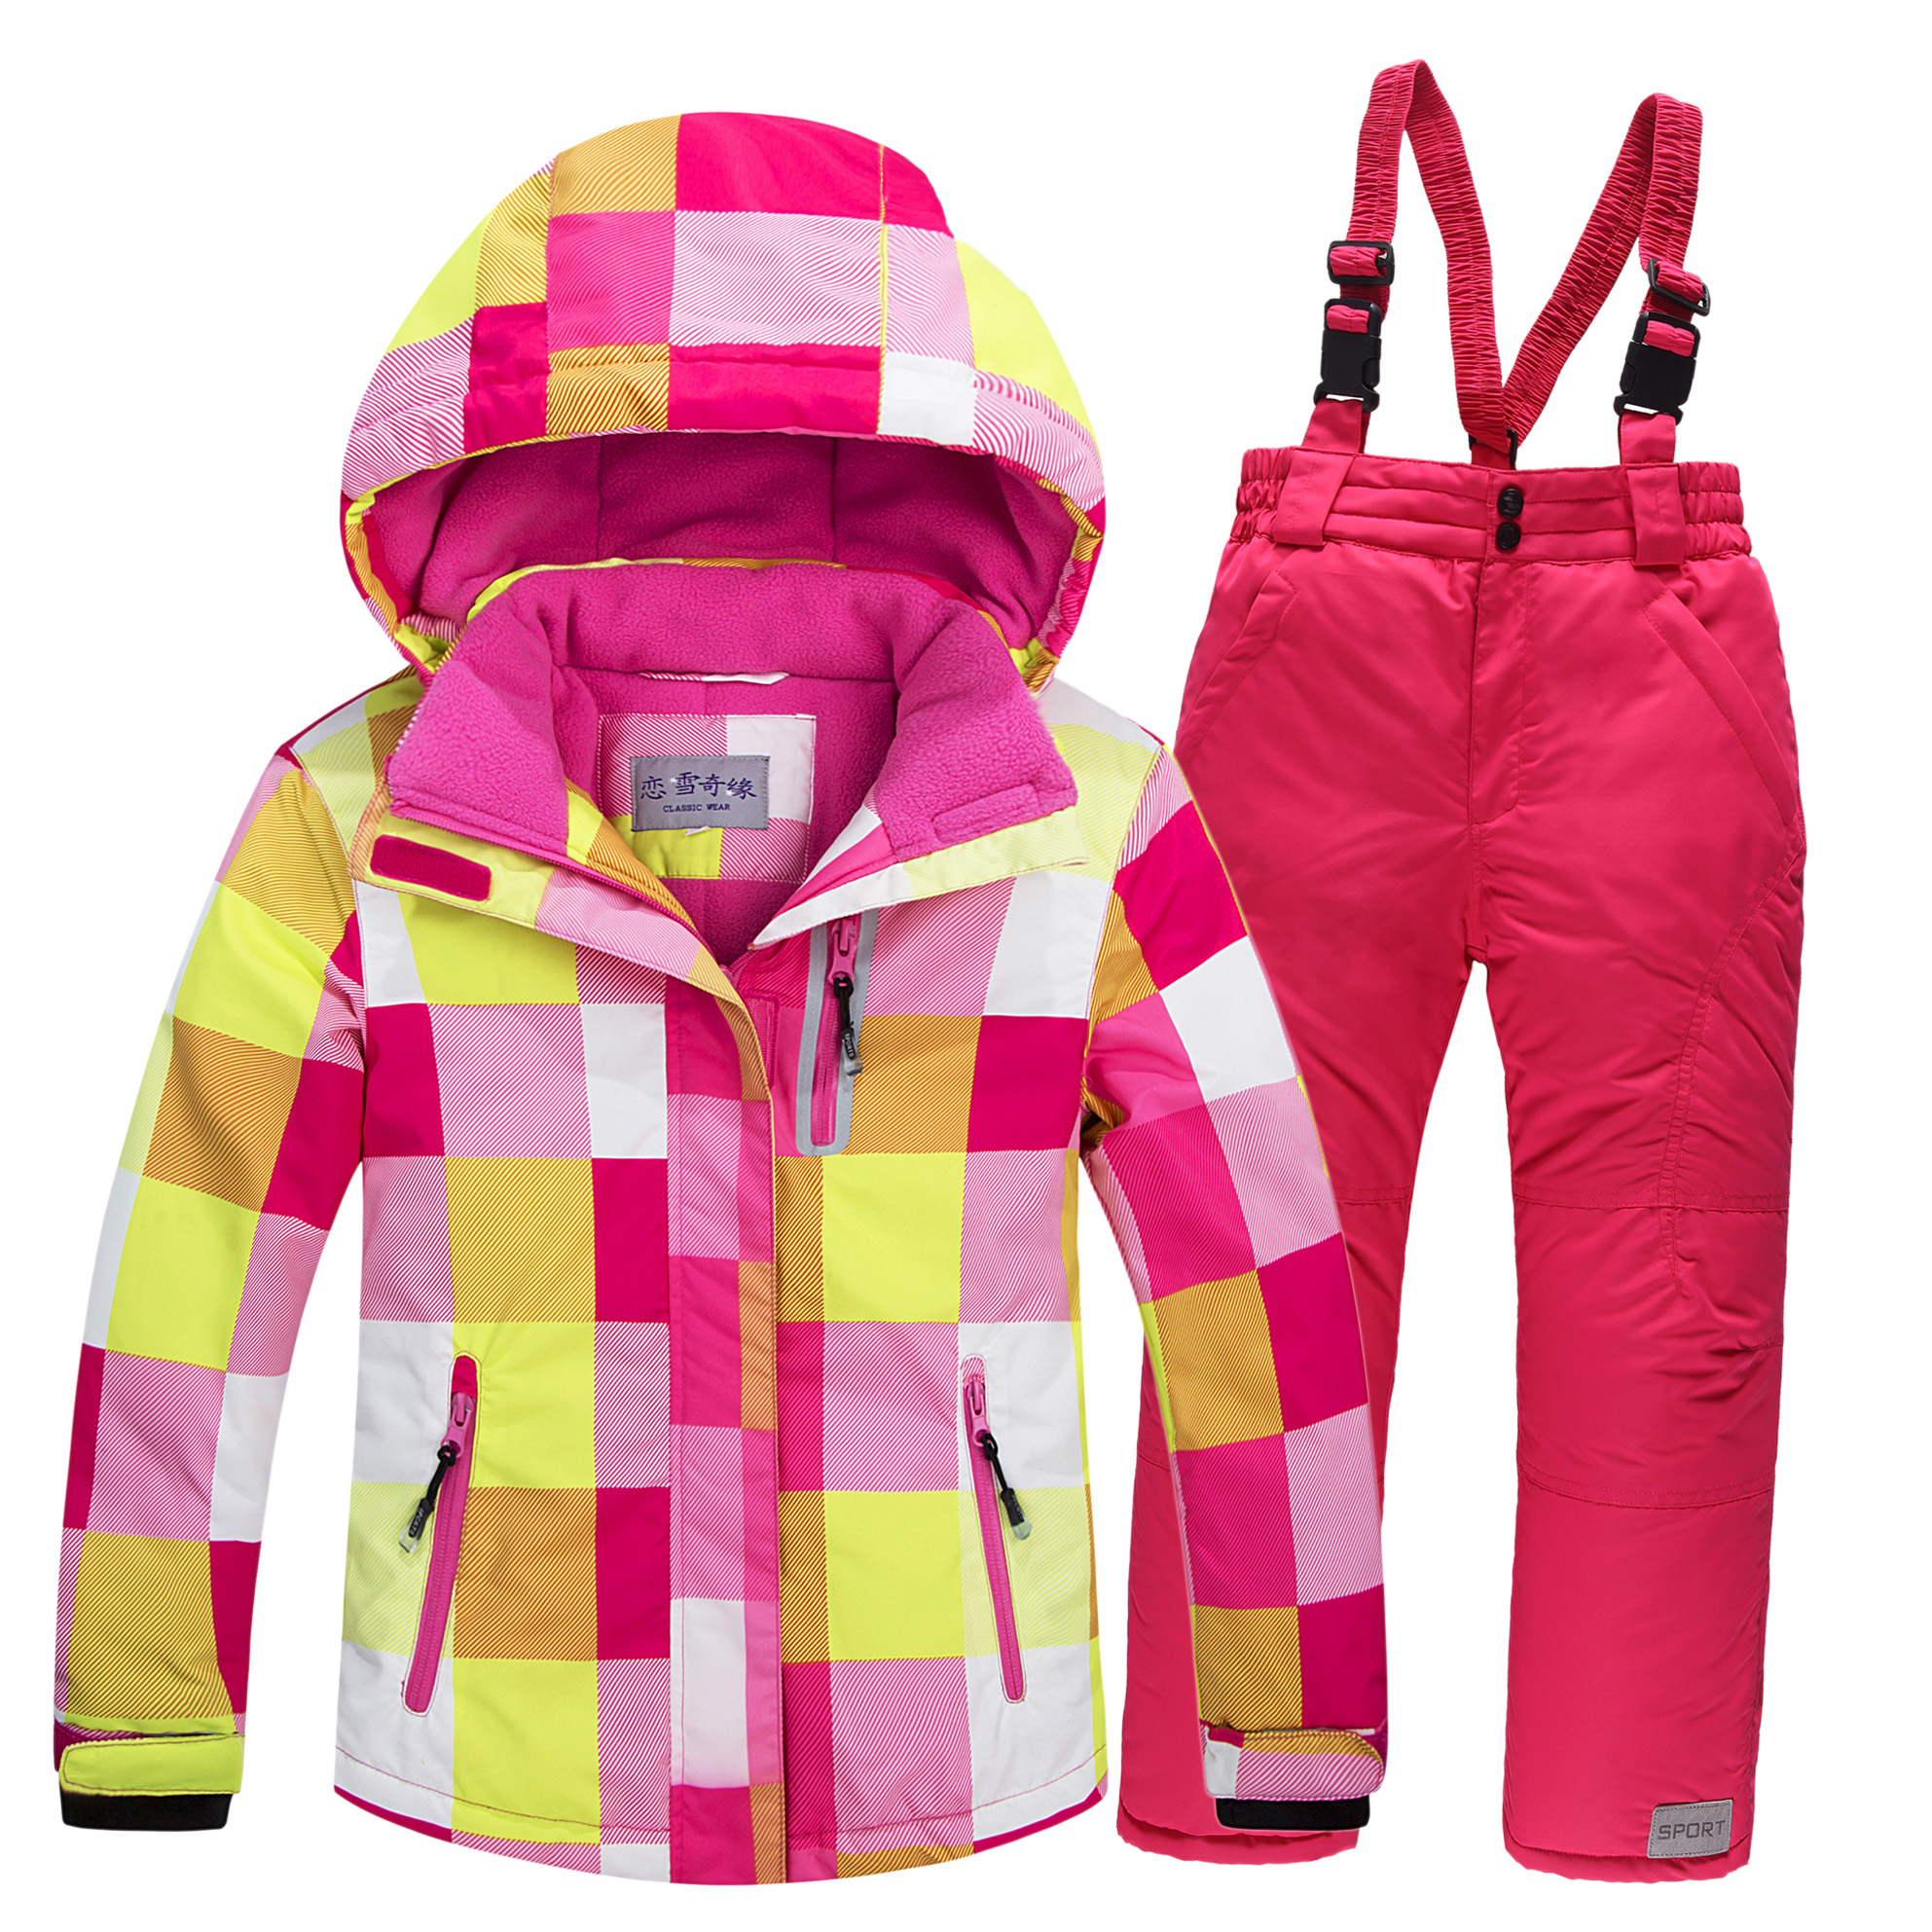 New High Quality Kids Ski Suit Children Windproof Waterproof Colorful Girls For Boy Snowboard Snow Jacket And Pants Winter Dress Sports & Entertainment